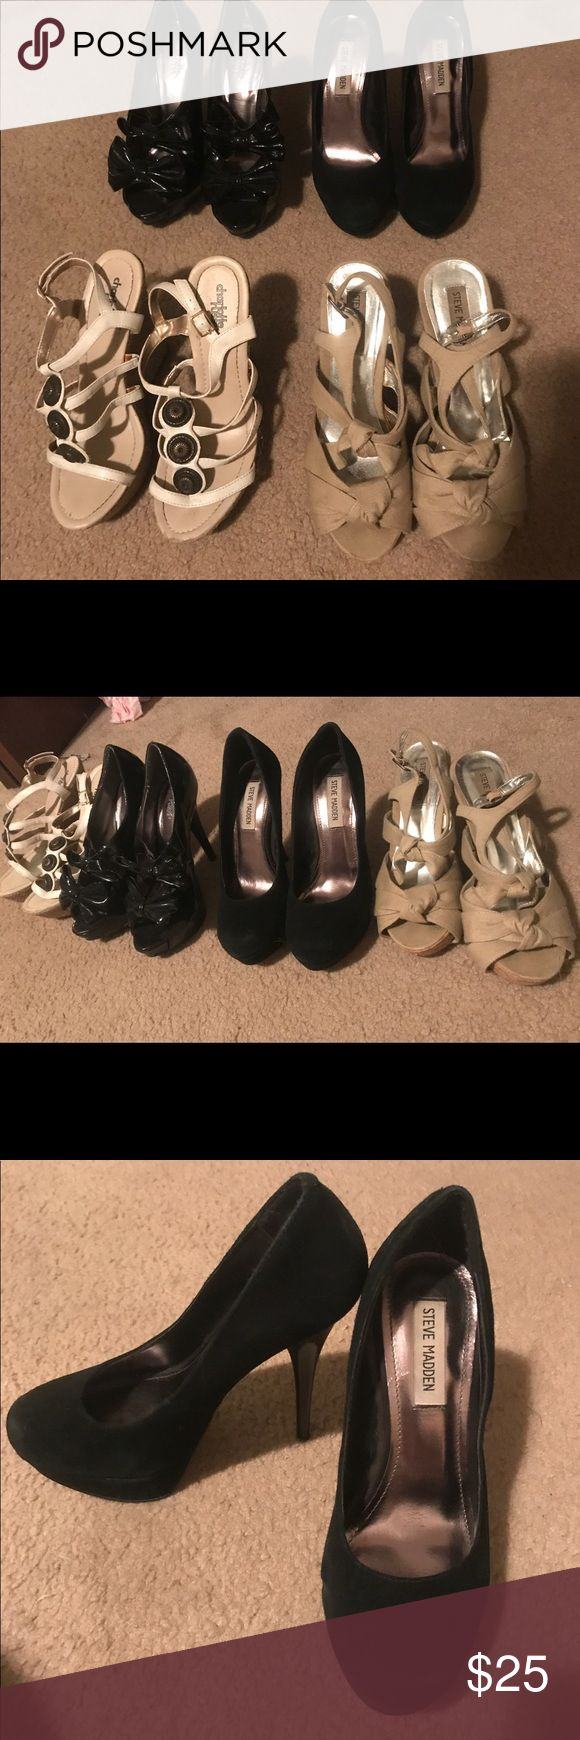 Lot of Women's Heels/ wedge shoes size 8 Selling a lot of women's shoes, heels and wedges. Two of the pairs are Steve Madden, one pair are black high pumps, the second tan wedges. The other pairs are Charlotte Russe, one pair of black shiny bow heels, the other white wedges. All of the shoes are a women's size 8. Most of them are worn which you can tell from the bottoms, but are otherwise in pretty good shape. Steve Madden Shoes Heels